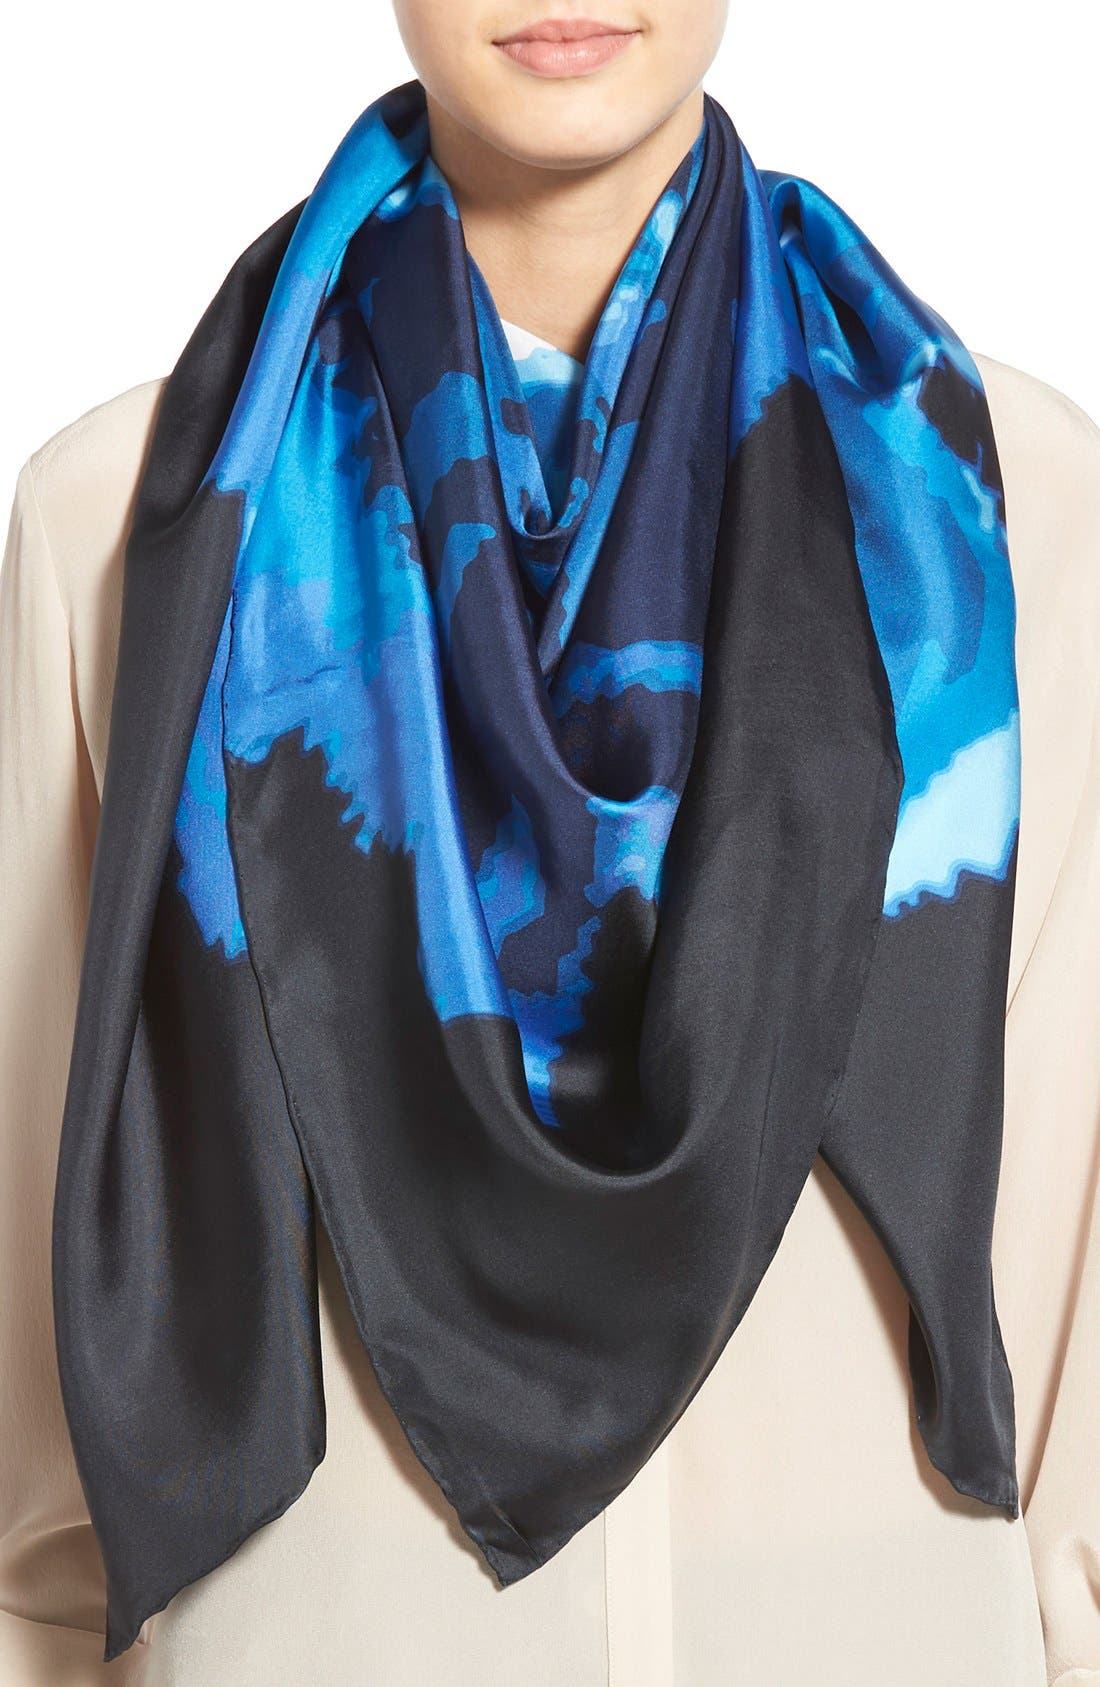 'Claremont' Rose' Silk Square Scarf,                         Main,                         color, Navy